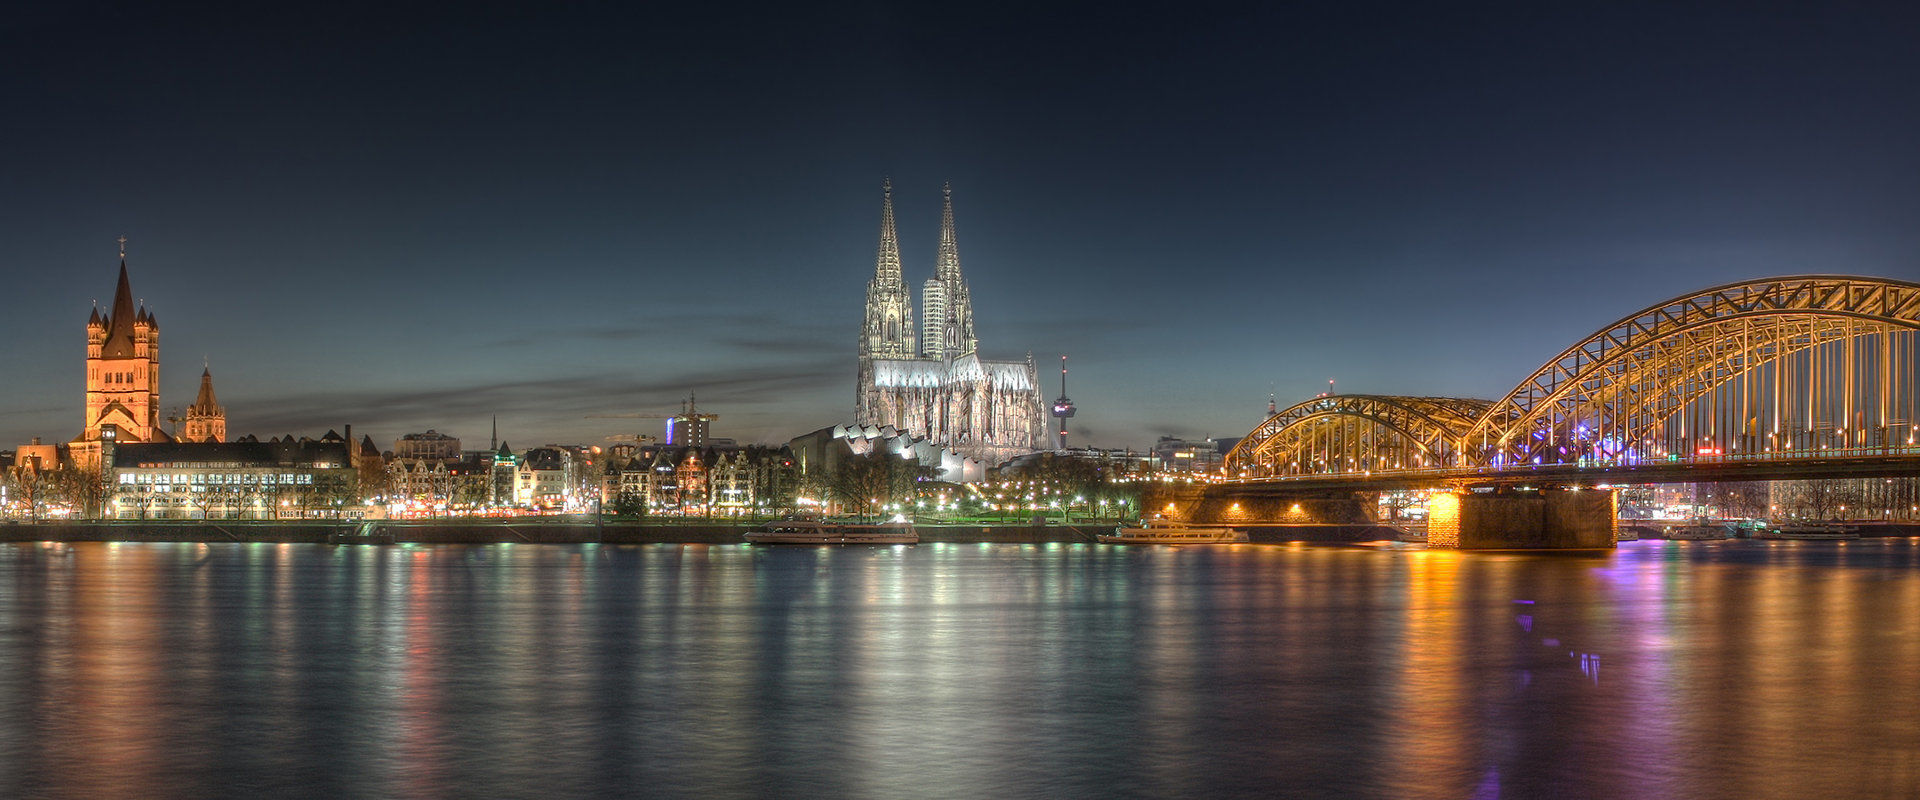 Cologne (Köln), Germany